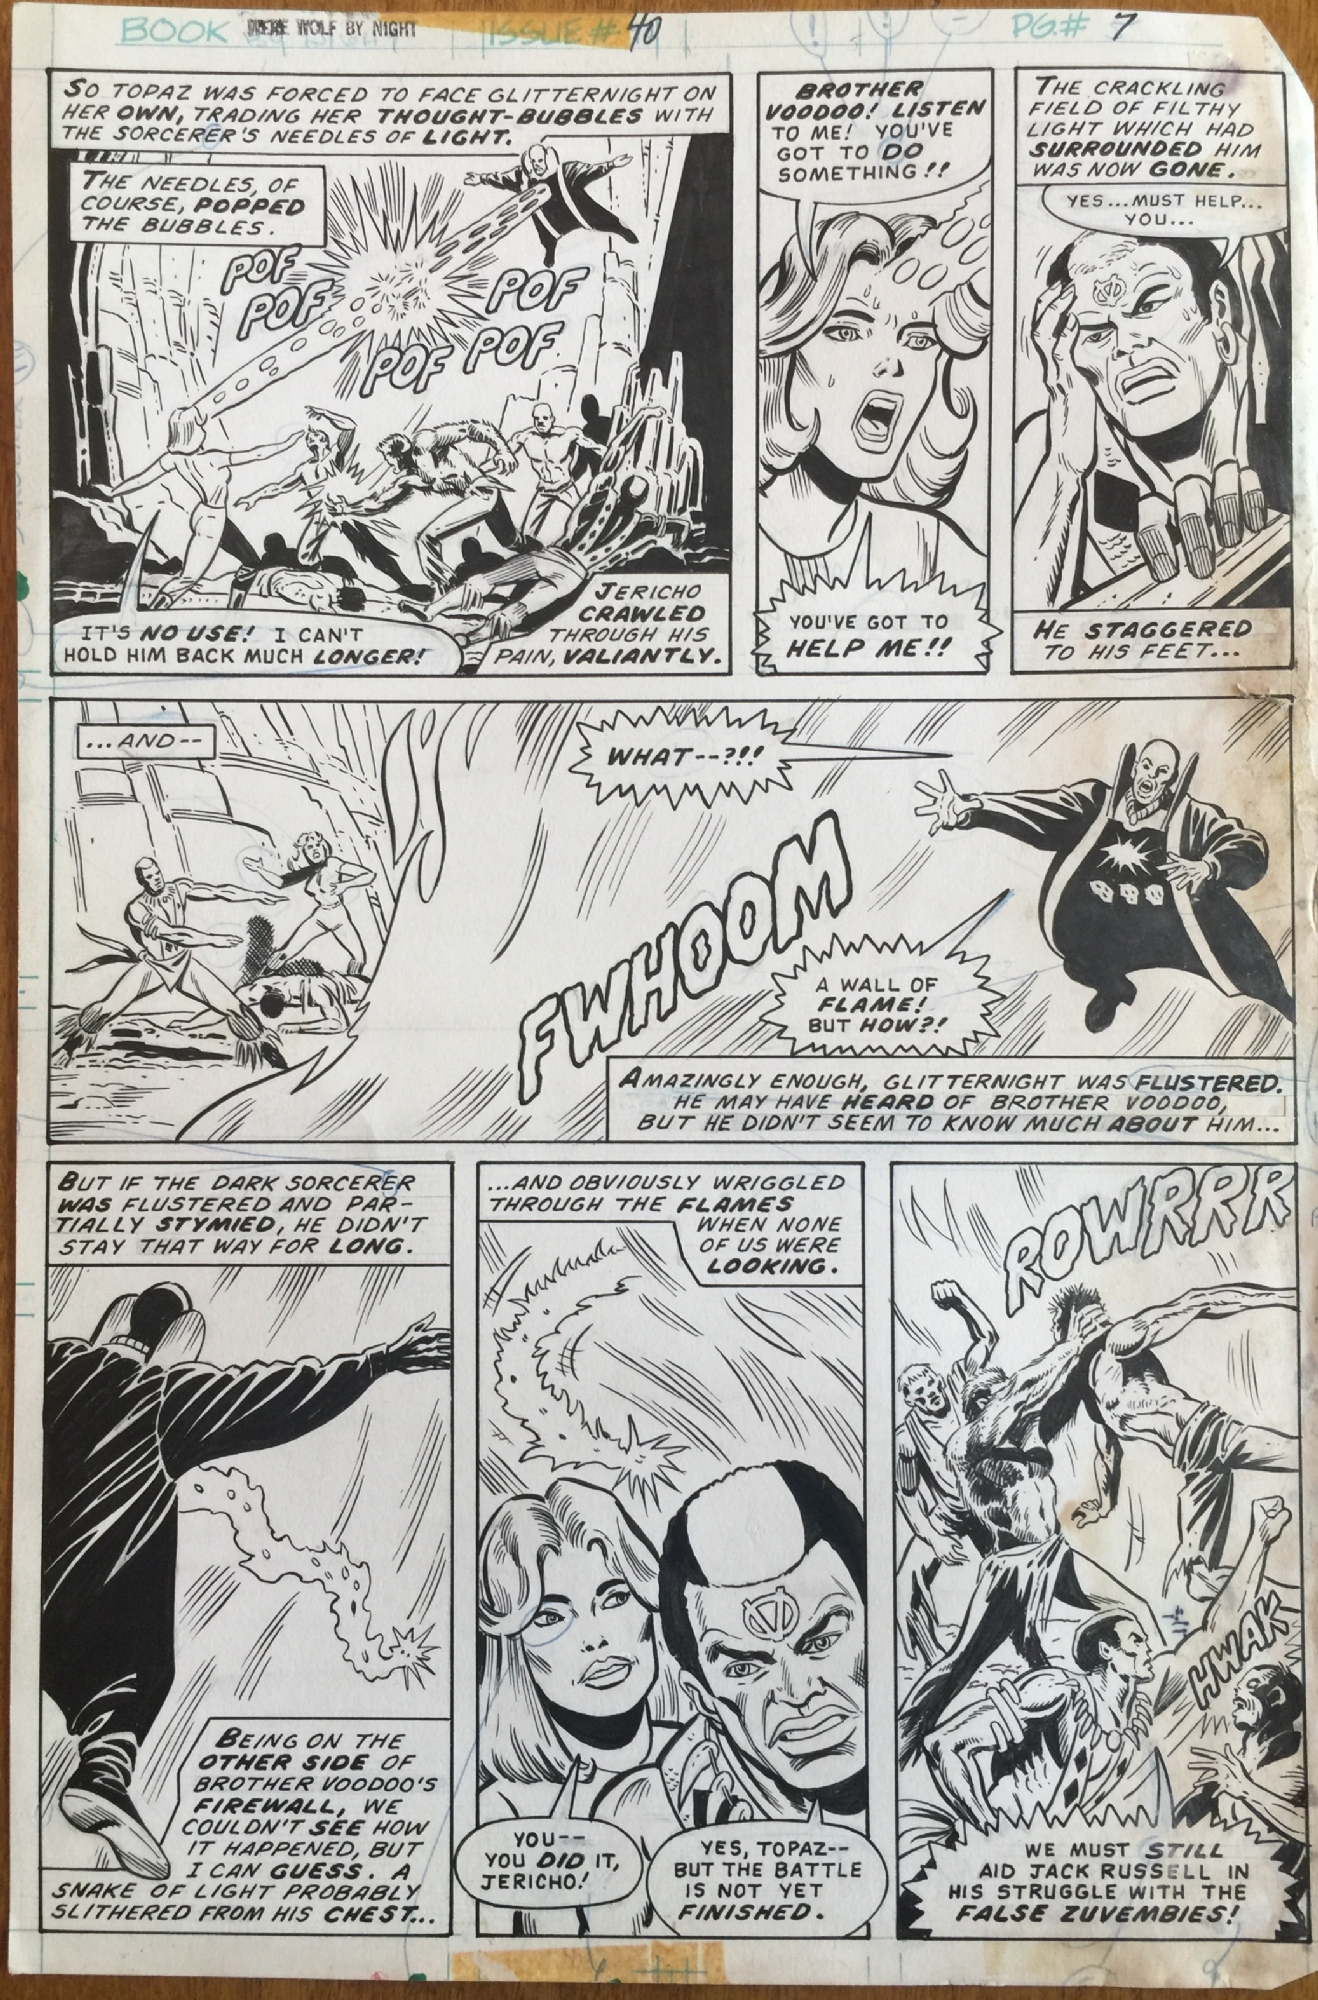 Werewolf By Night (1972) #40 pg7, penciled & inked by Don Perlin.